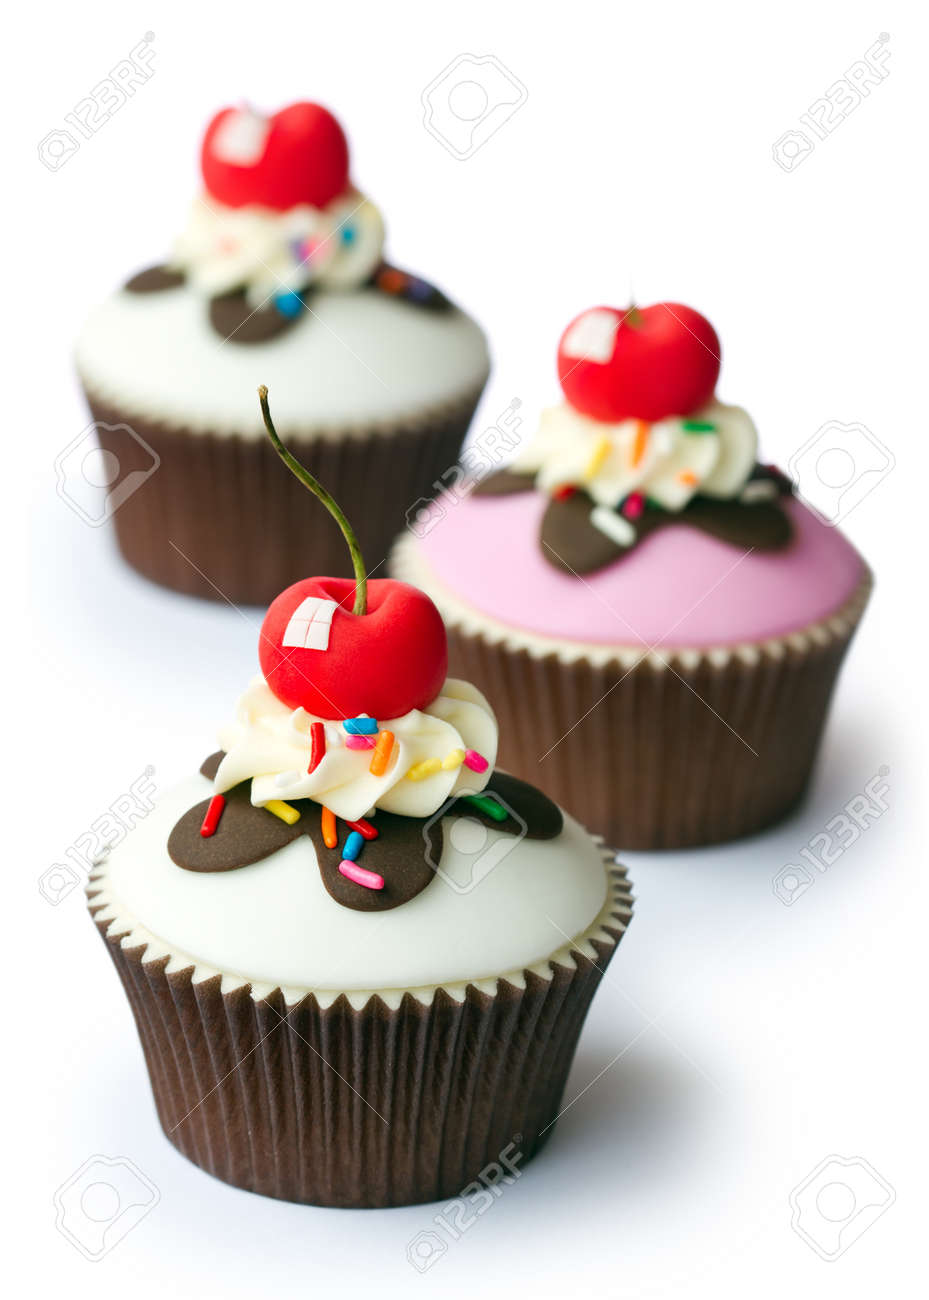 Cherry cupcakes Stock Photo - 16400597